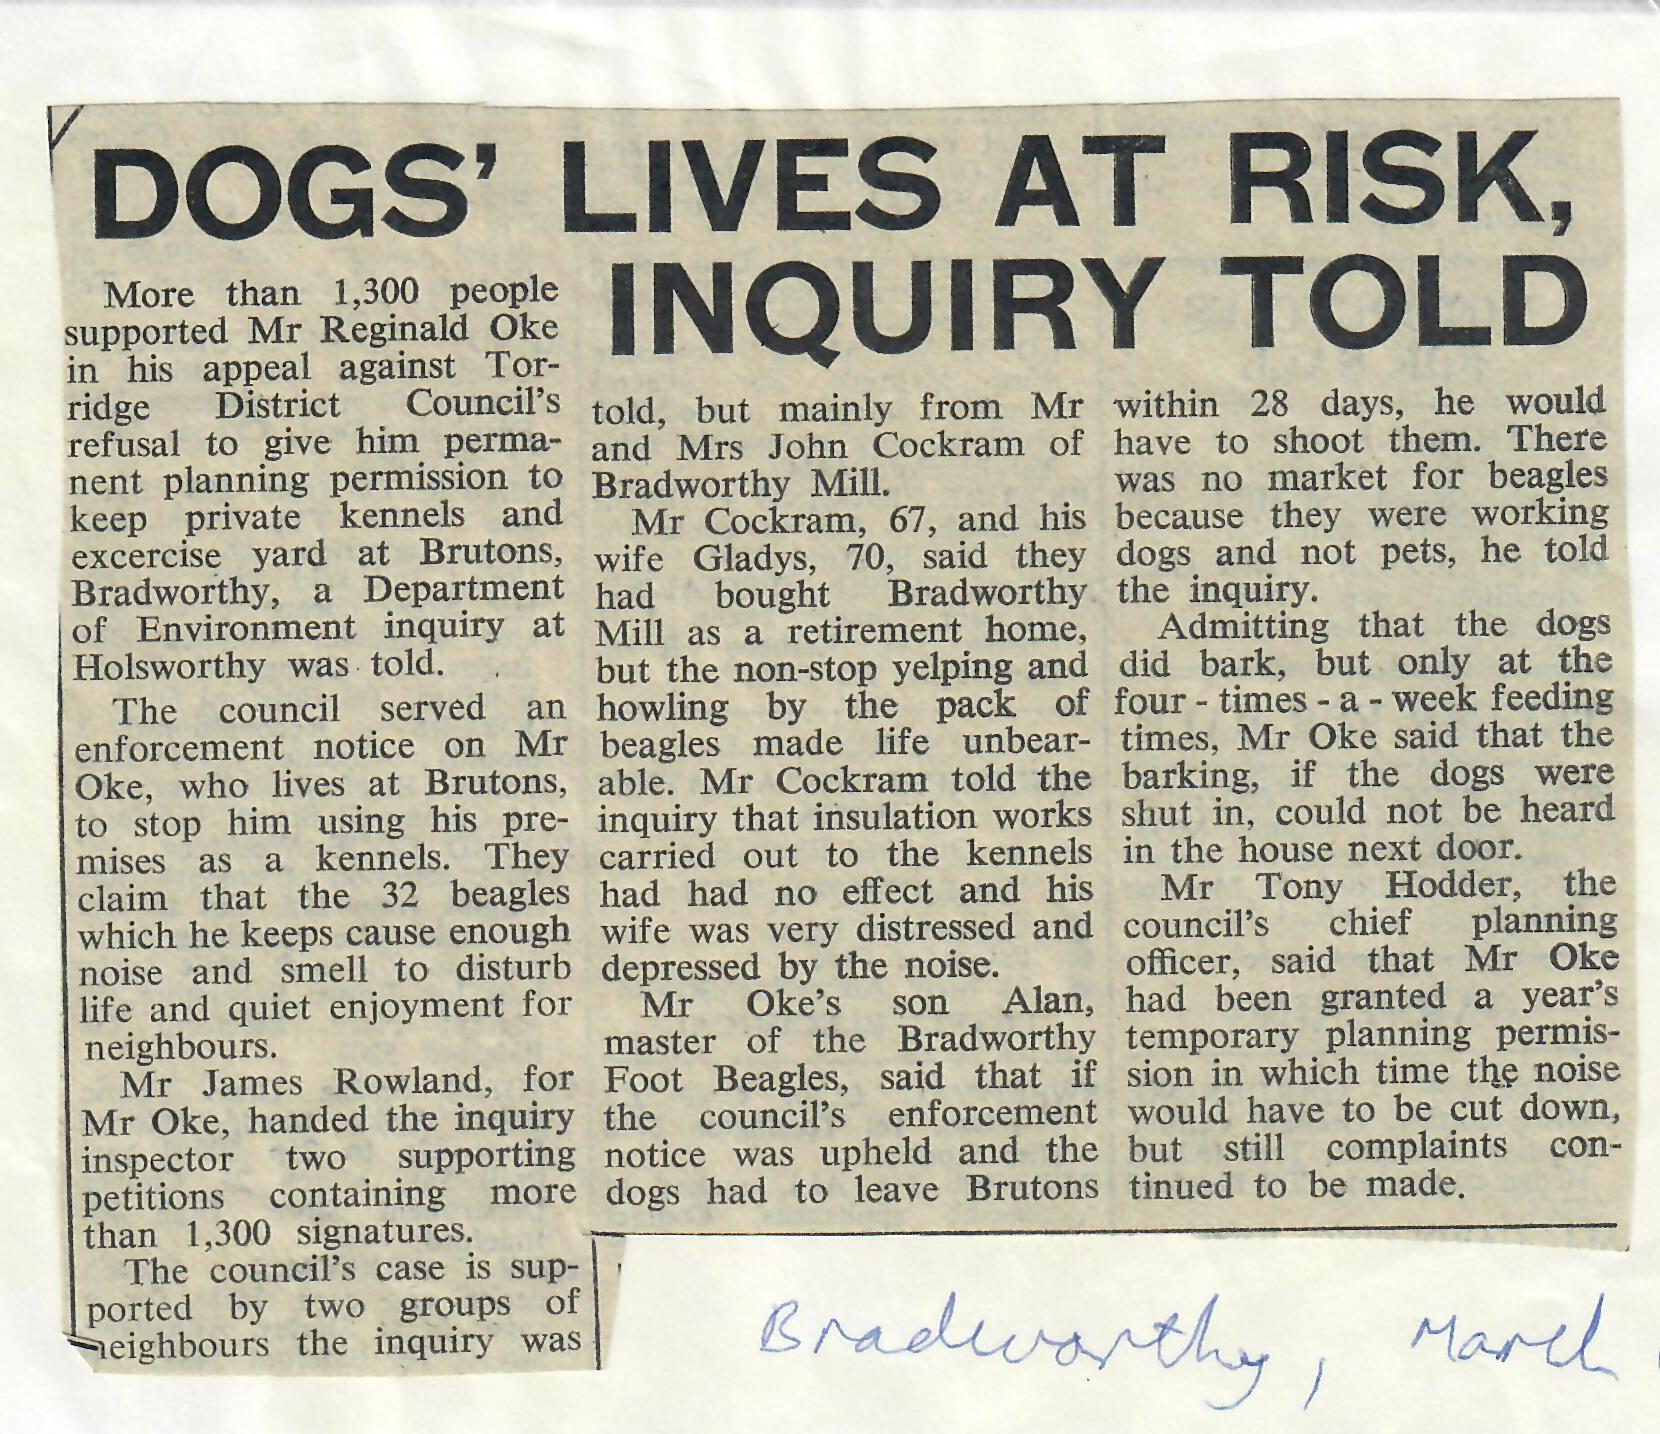 dogs lives at risk, inquiry told